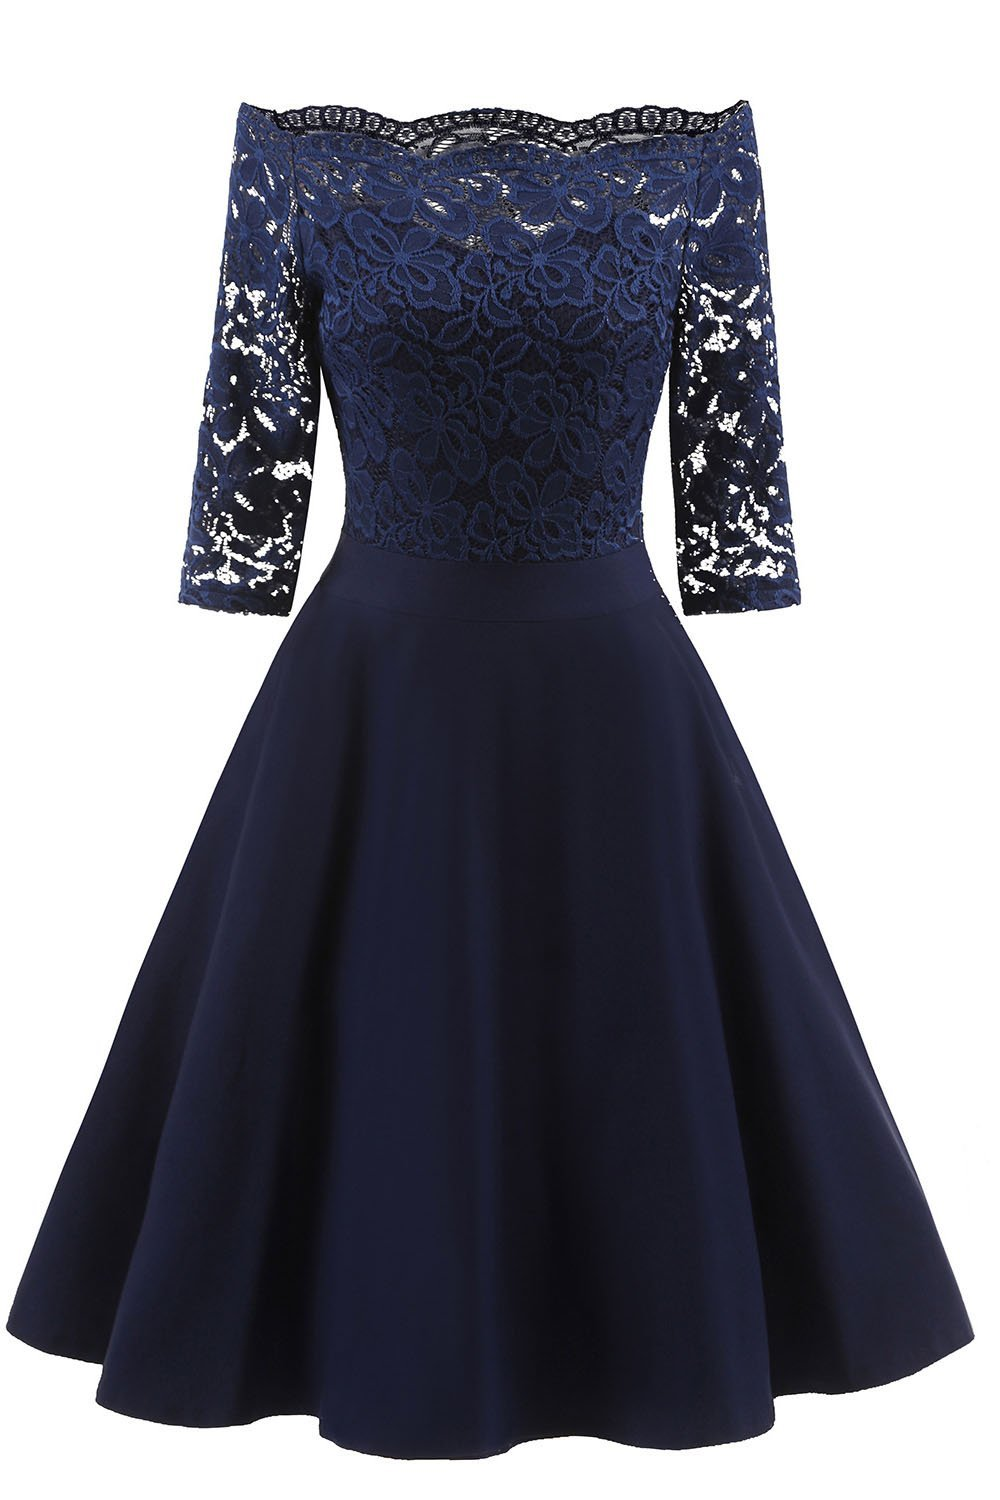 Elegant Off-Shoulder Patchwork Lace Dress-S / Blue-looksinn